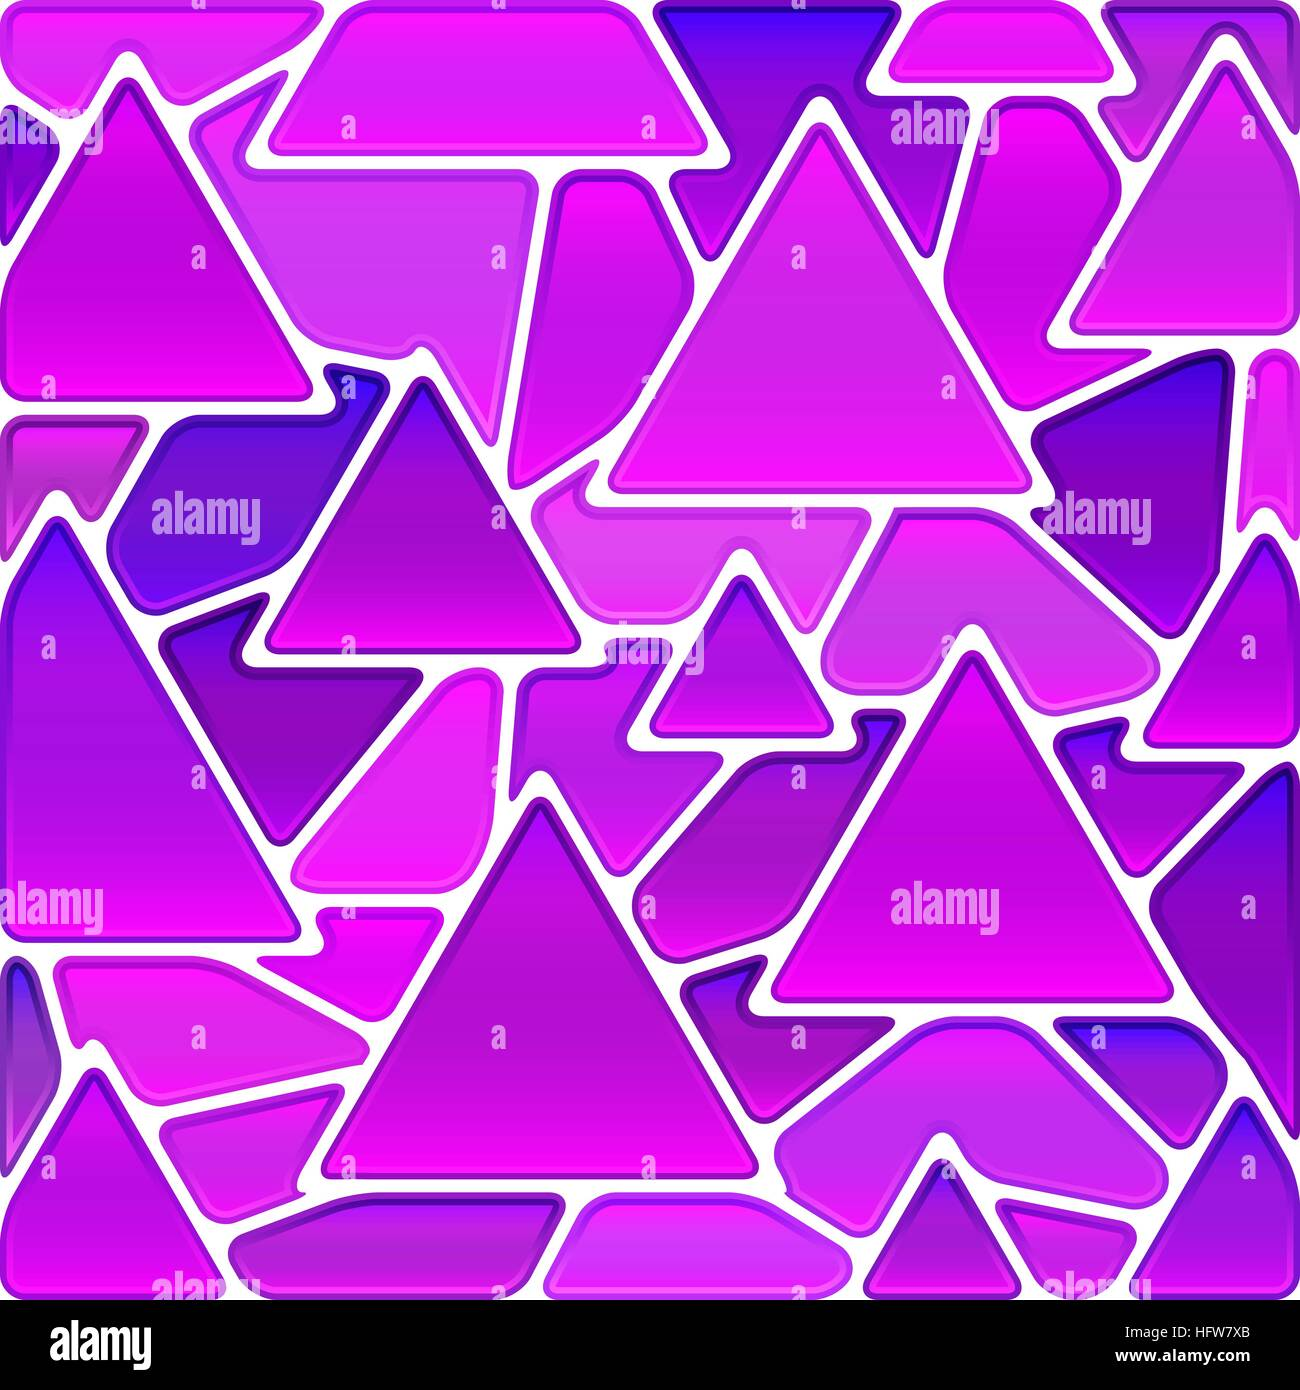 abstract vector stained-glass mosaic background - magenta triangles - Stock Vector